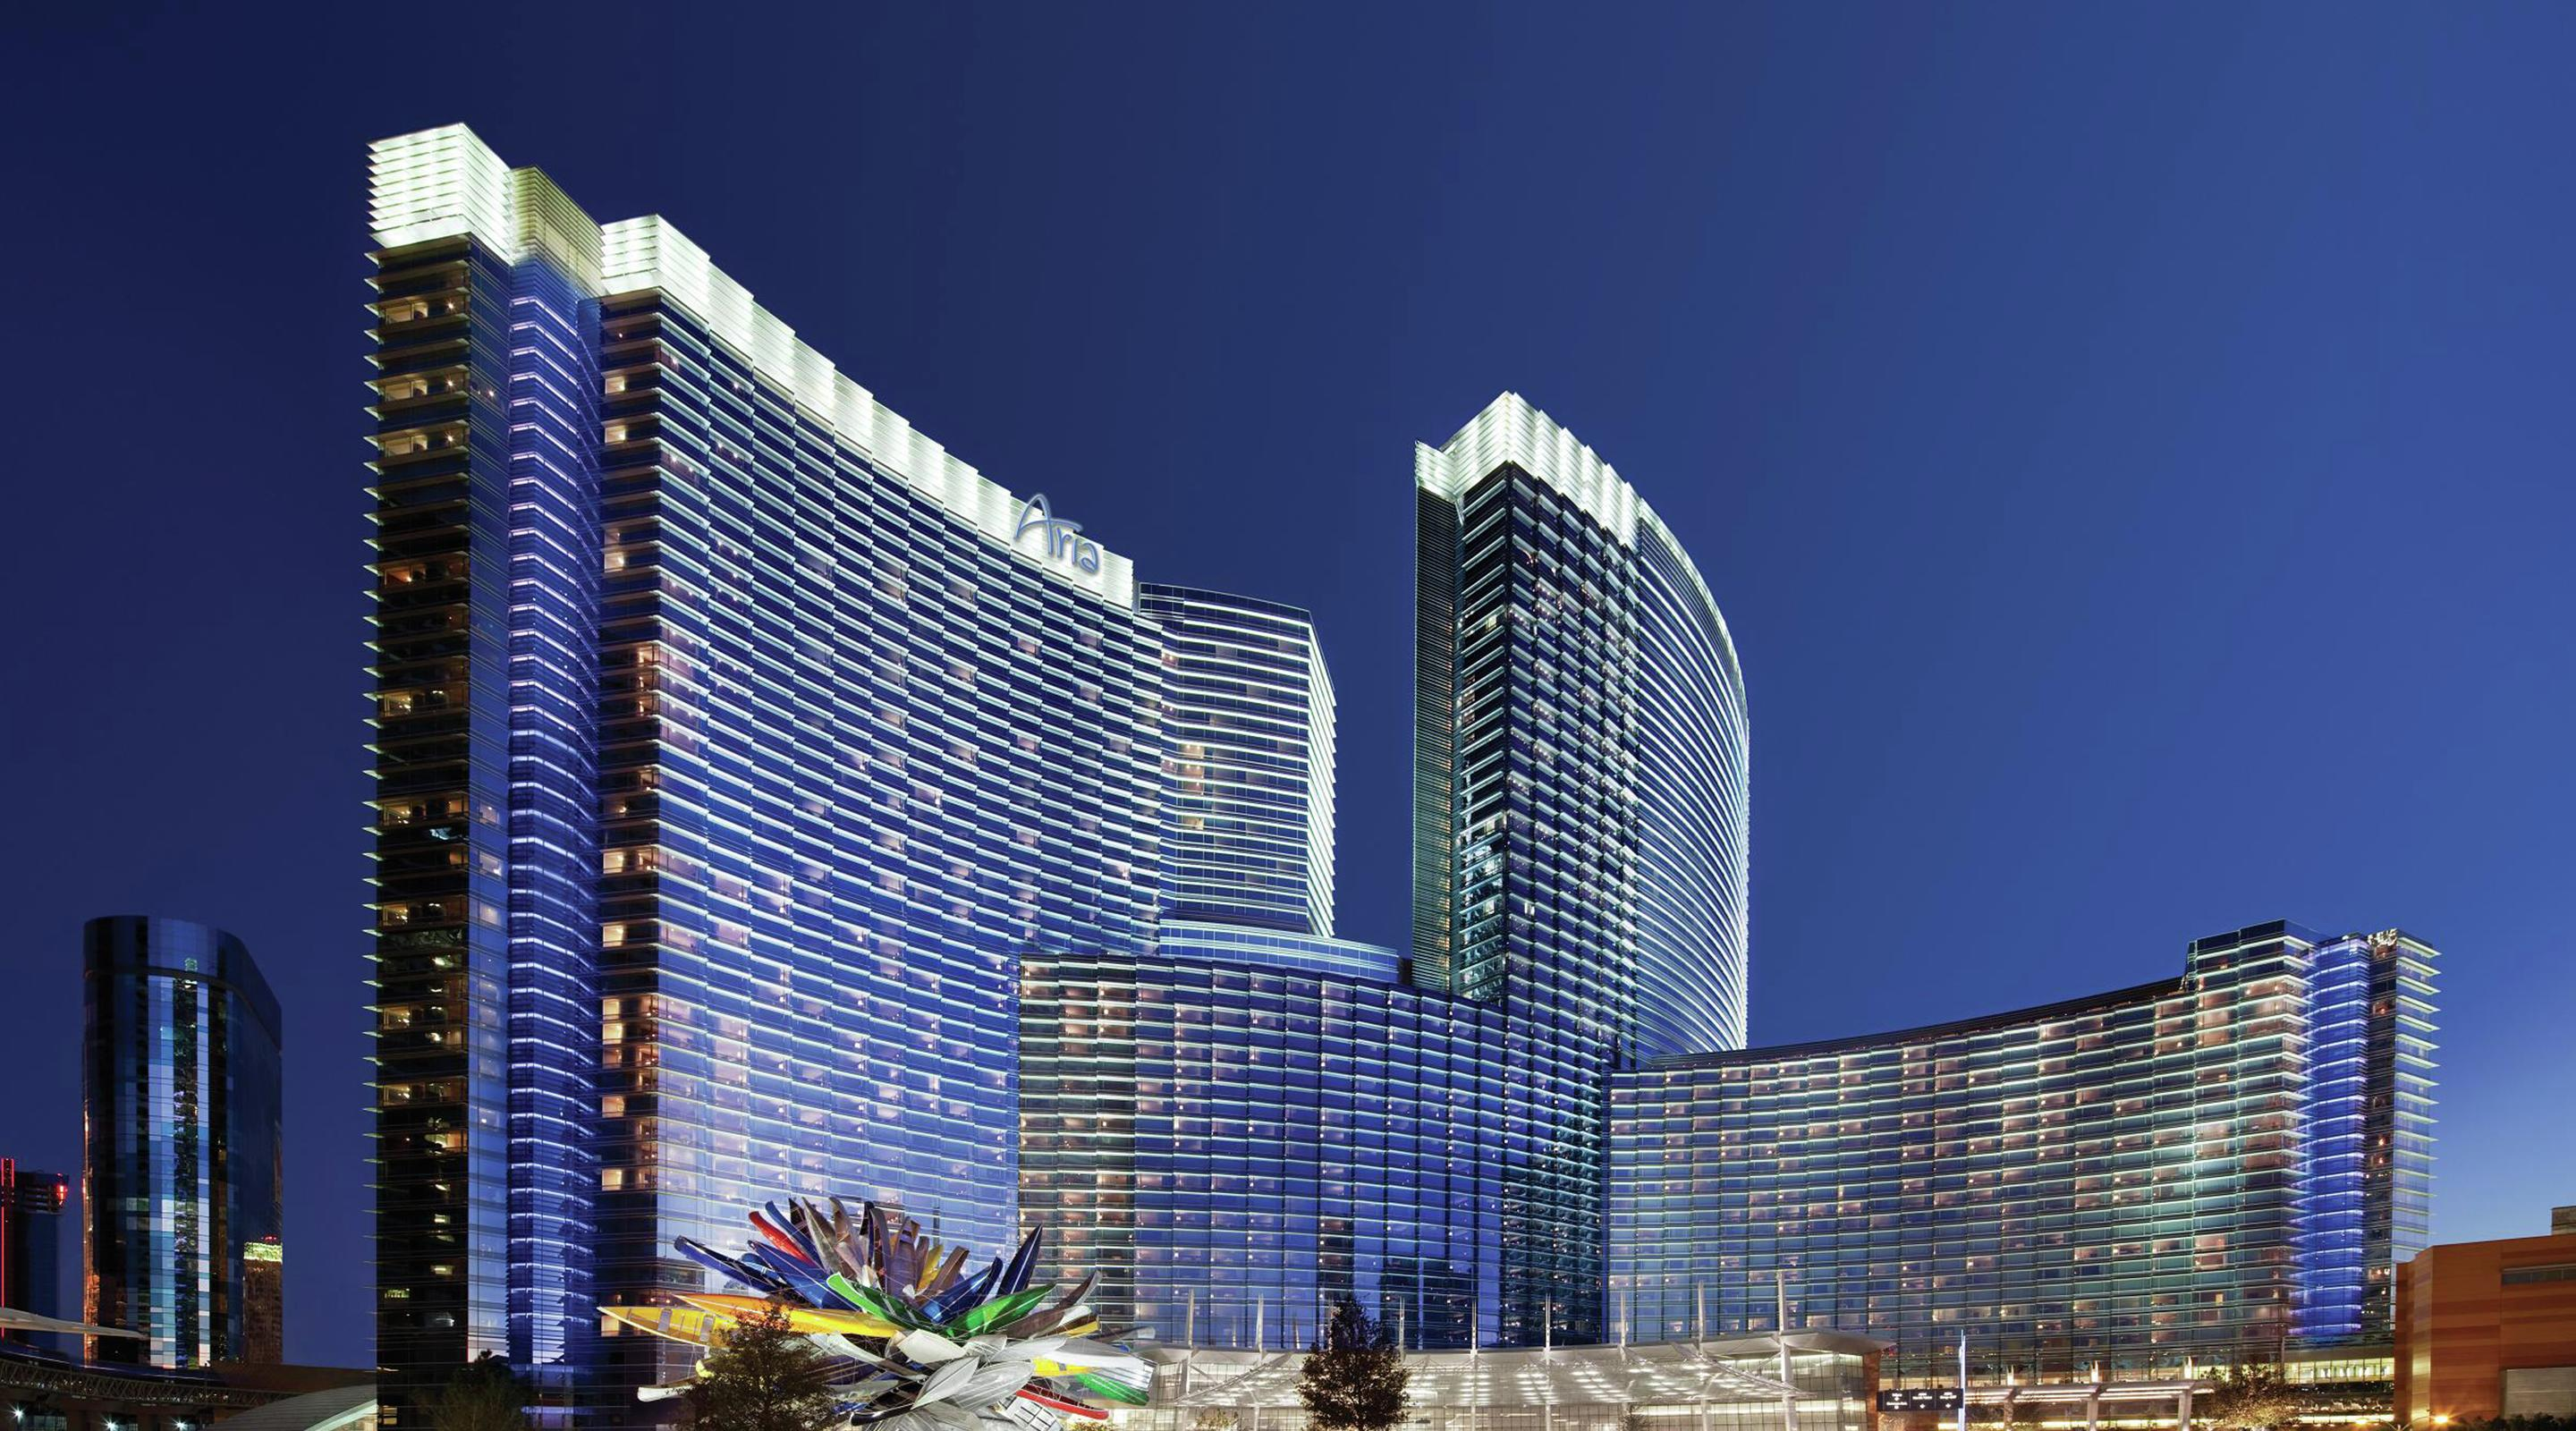 aria resort and casino address